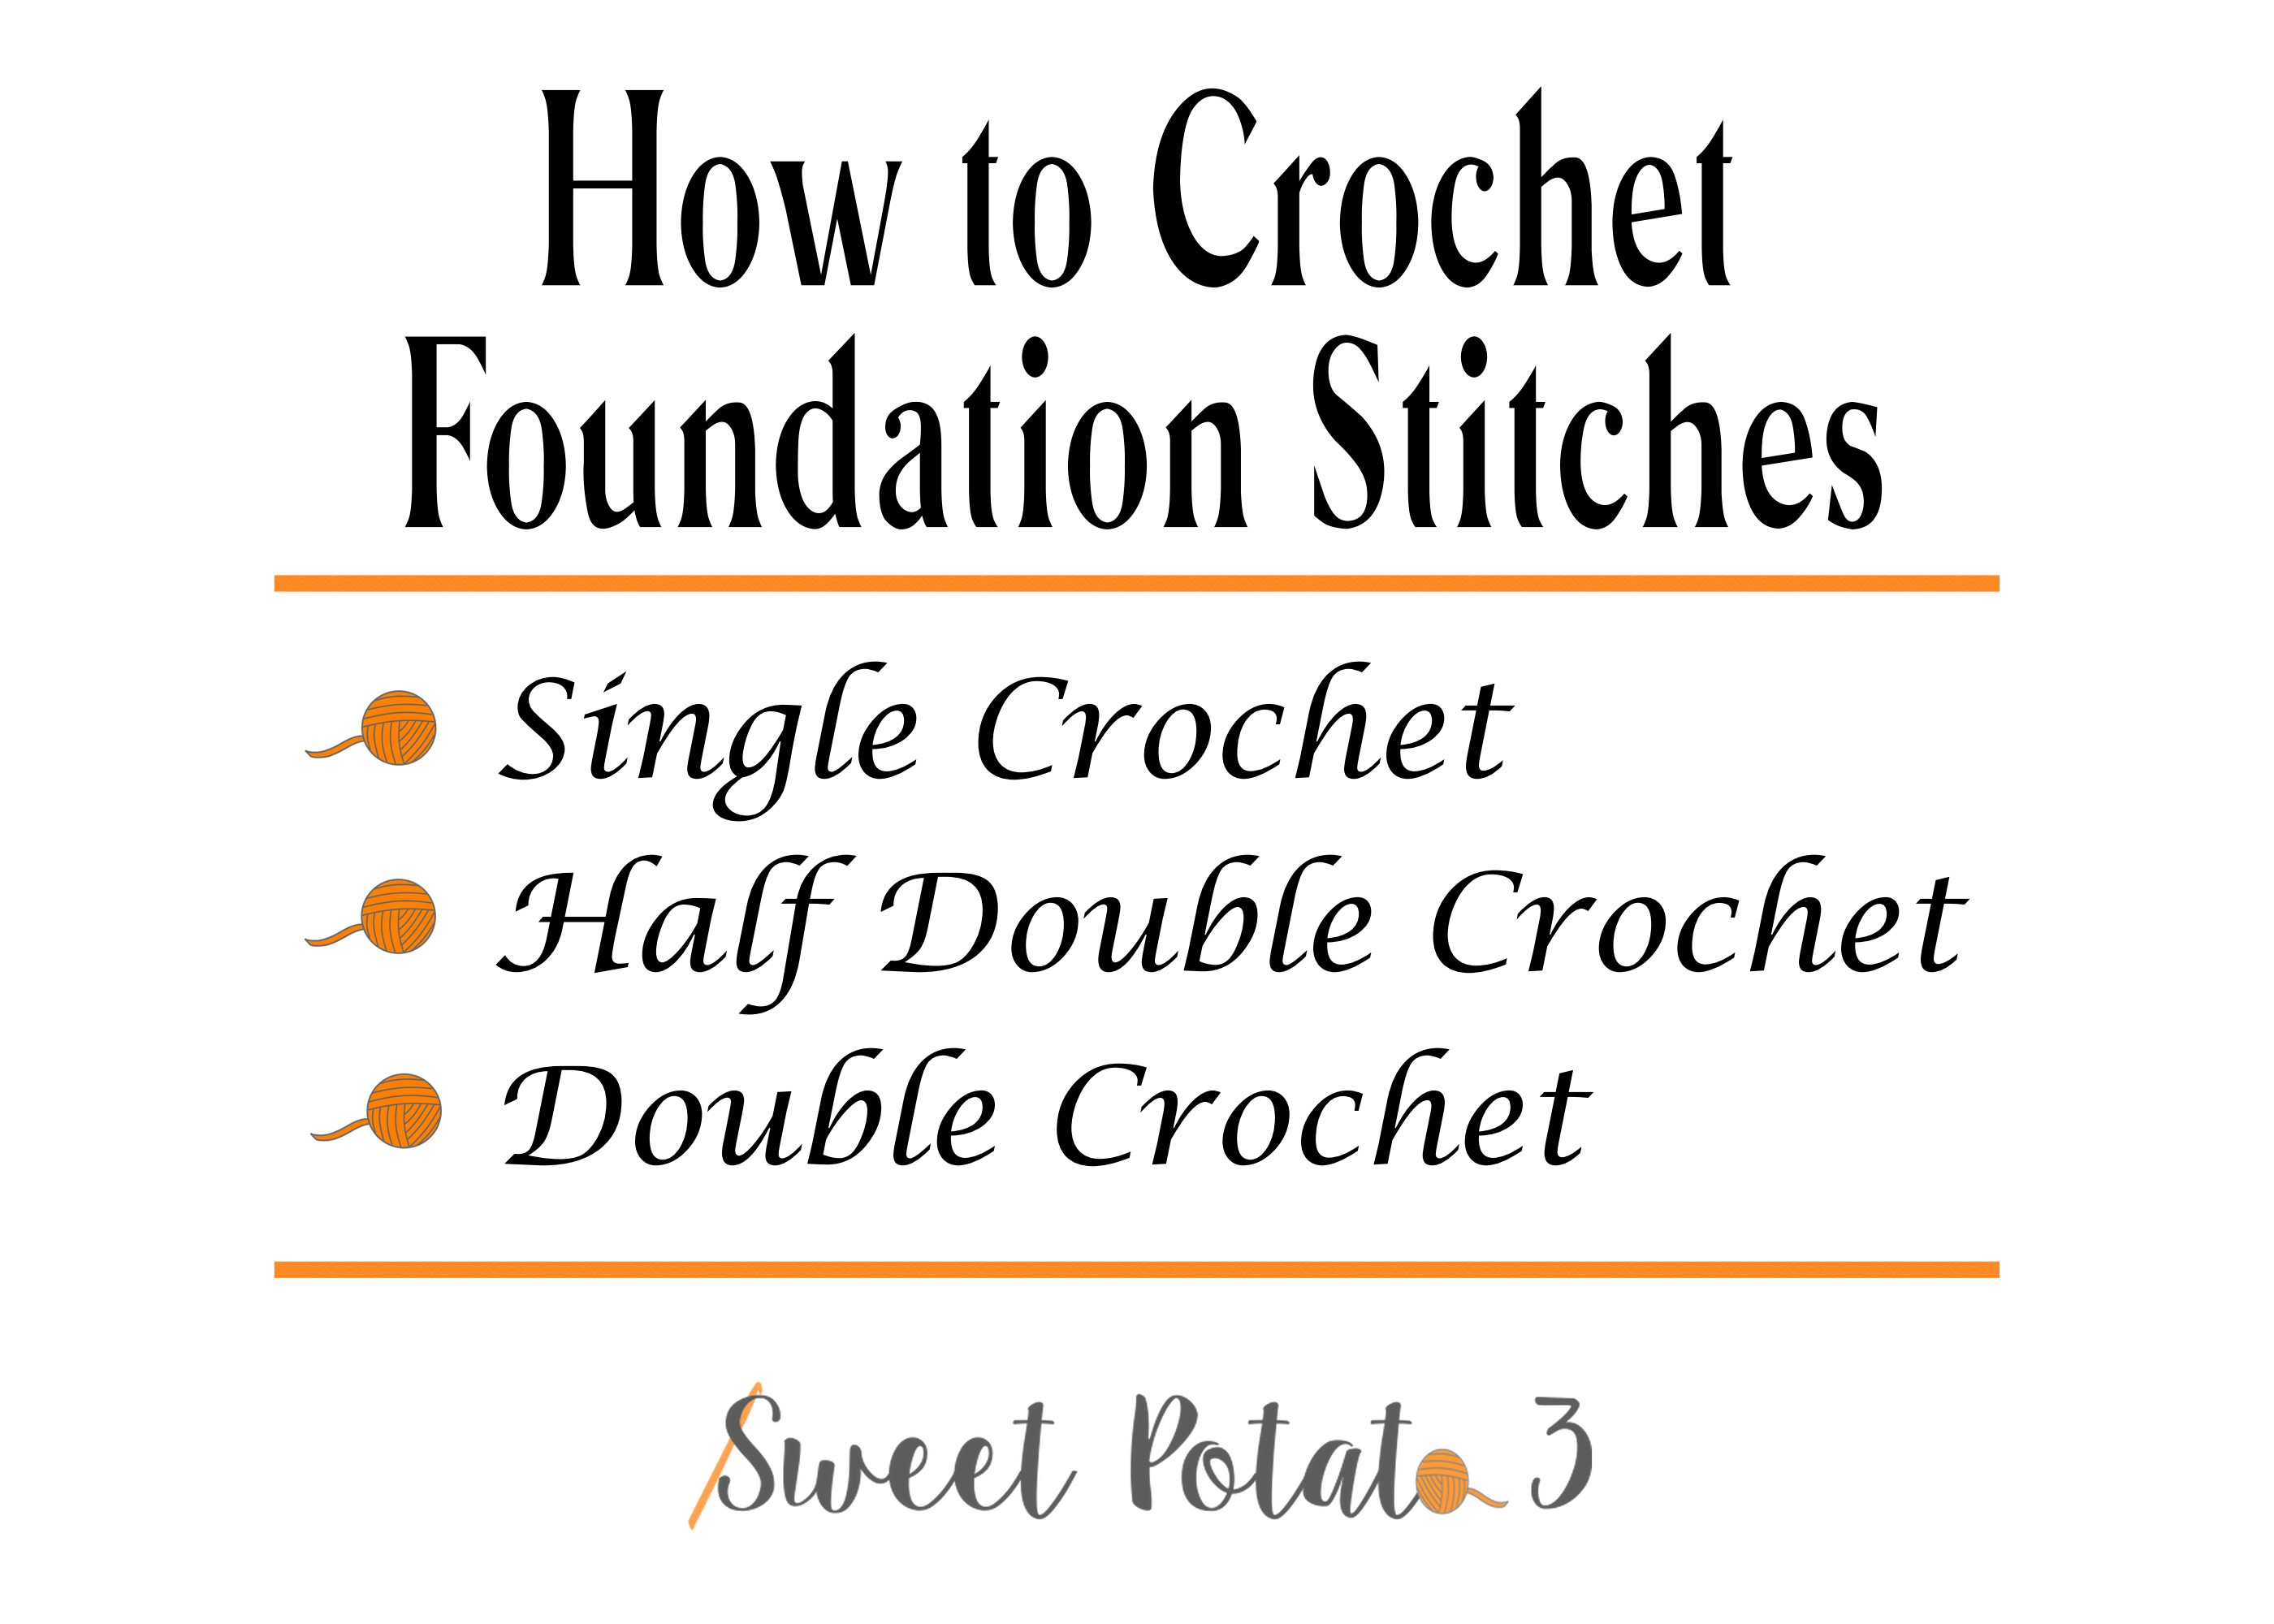 How to Crochet Foundation Stitches: Single, Half Double & Double